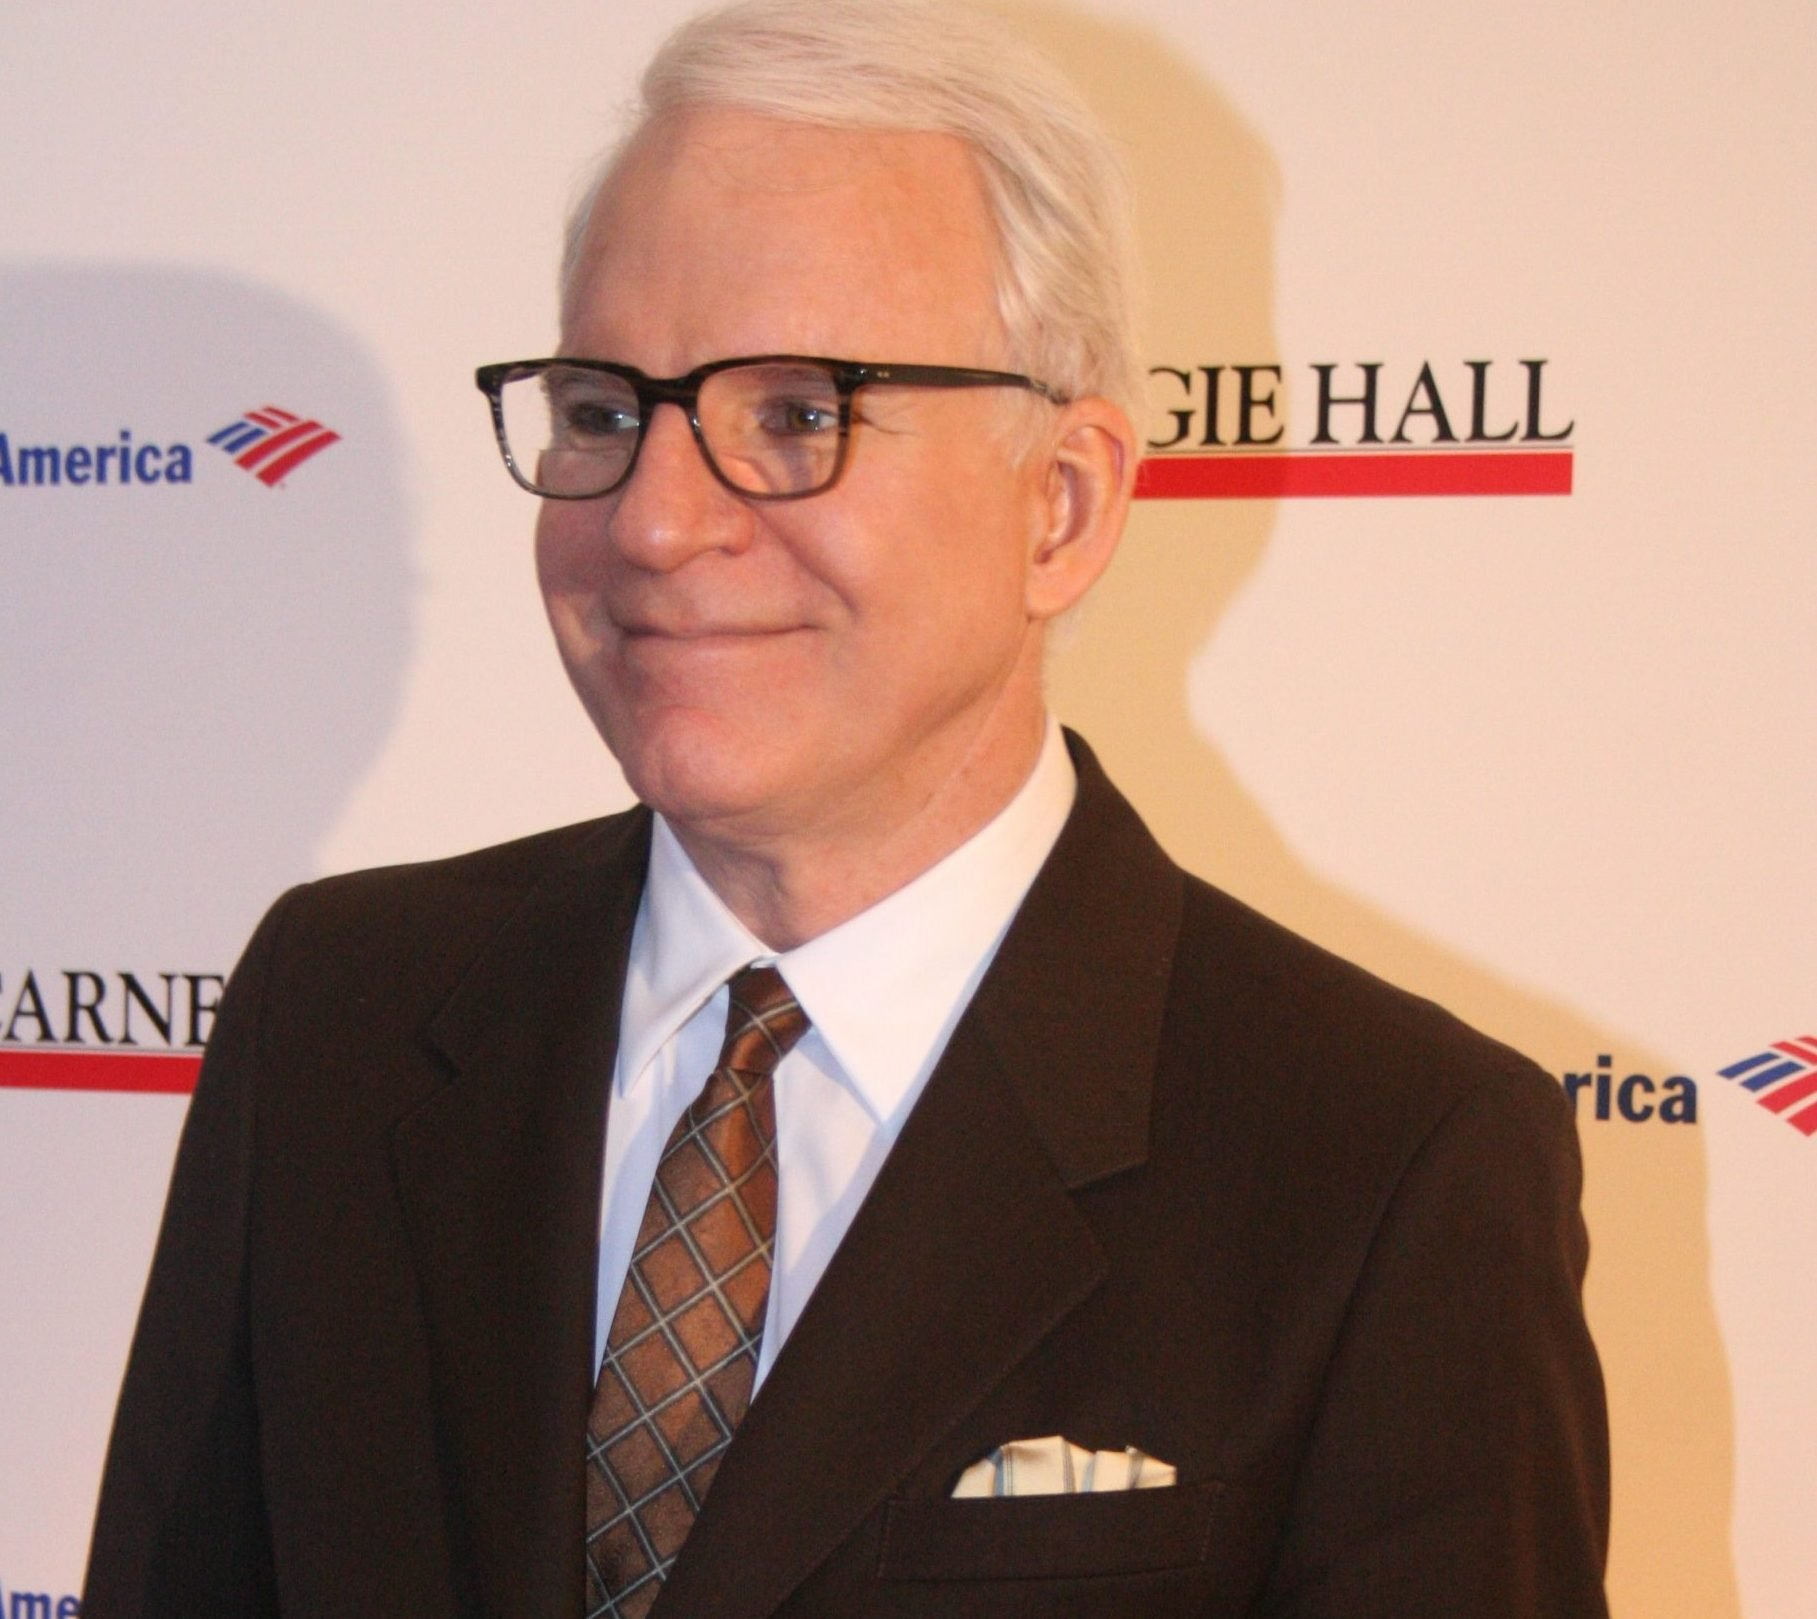 Steve Martin 2011 scaled e1628859619828 20 Things You Didn't Know About Steve Martin